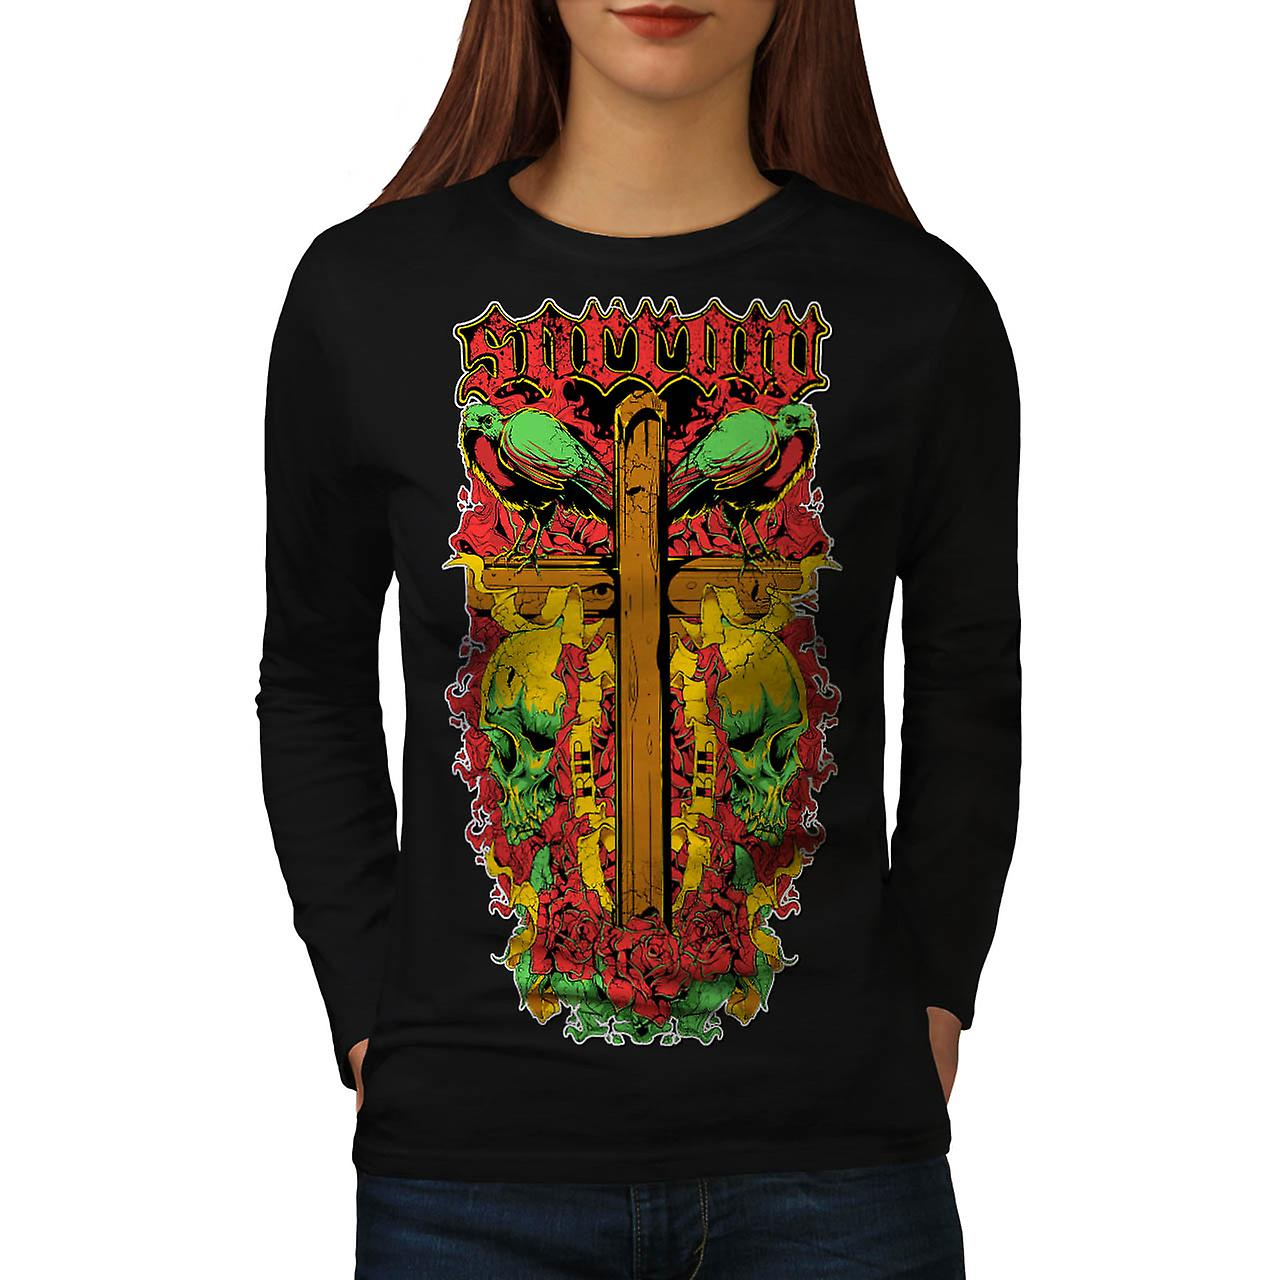 Sorrow Vintage Fantasy Women Black Long Sleeve T-shirt | Wellcoda